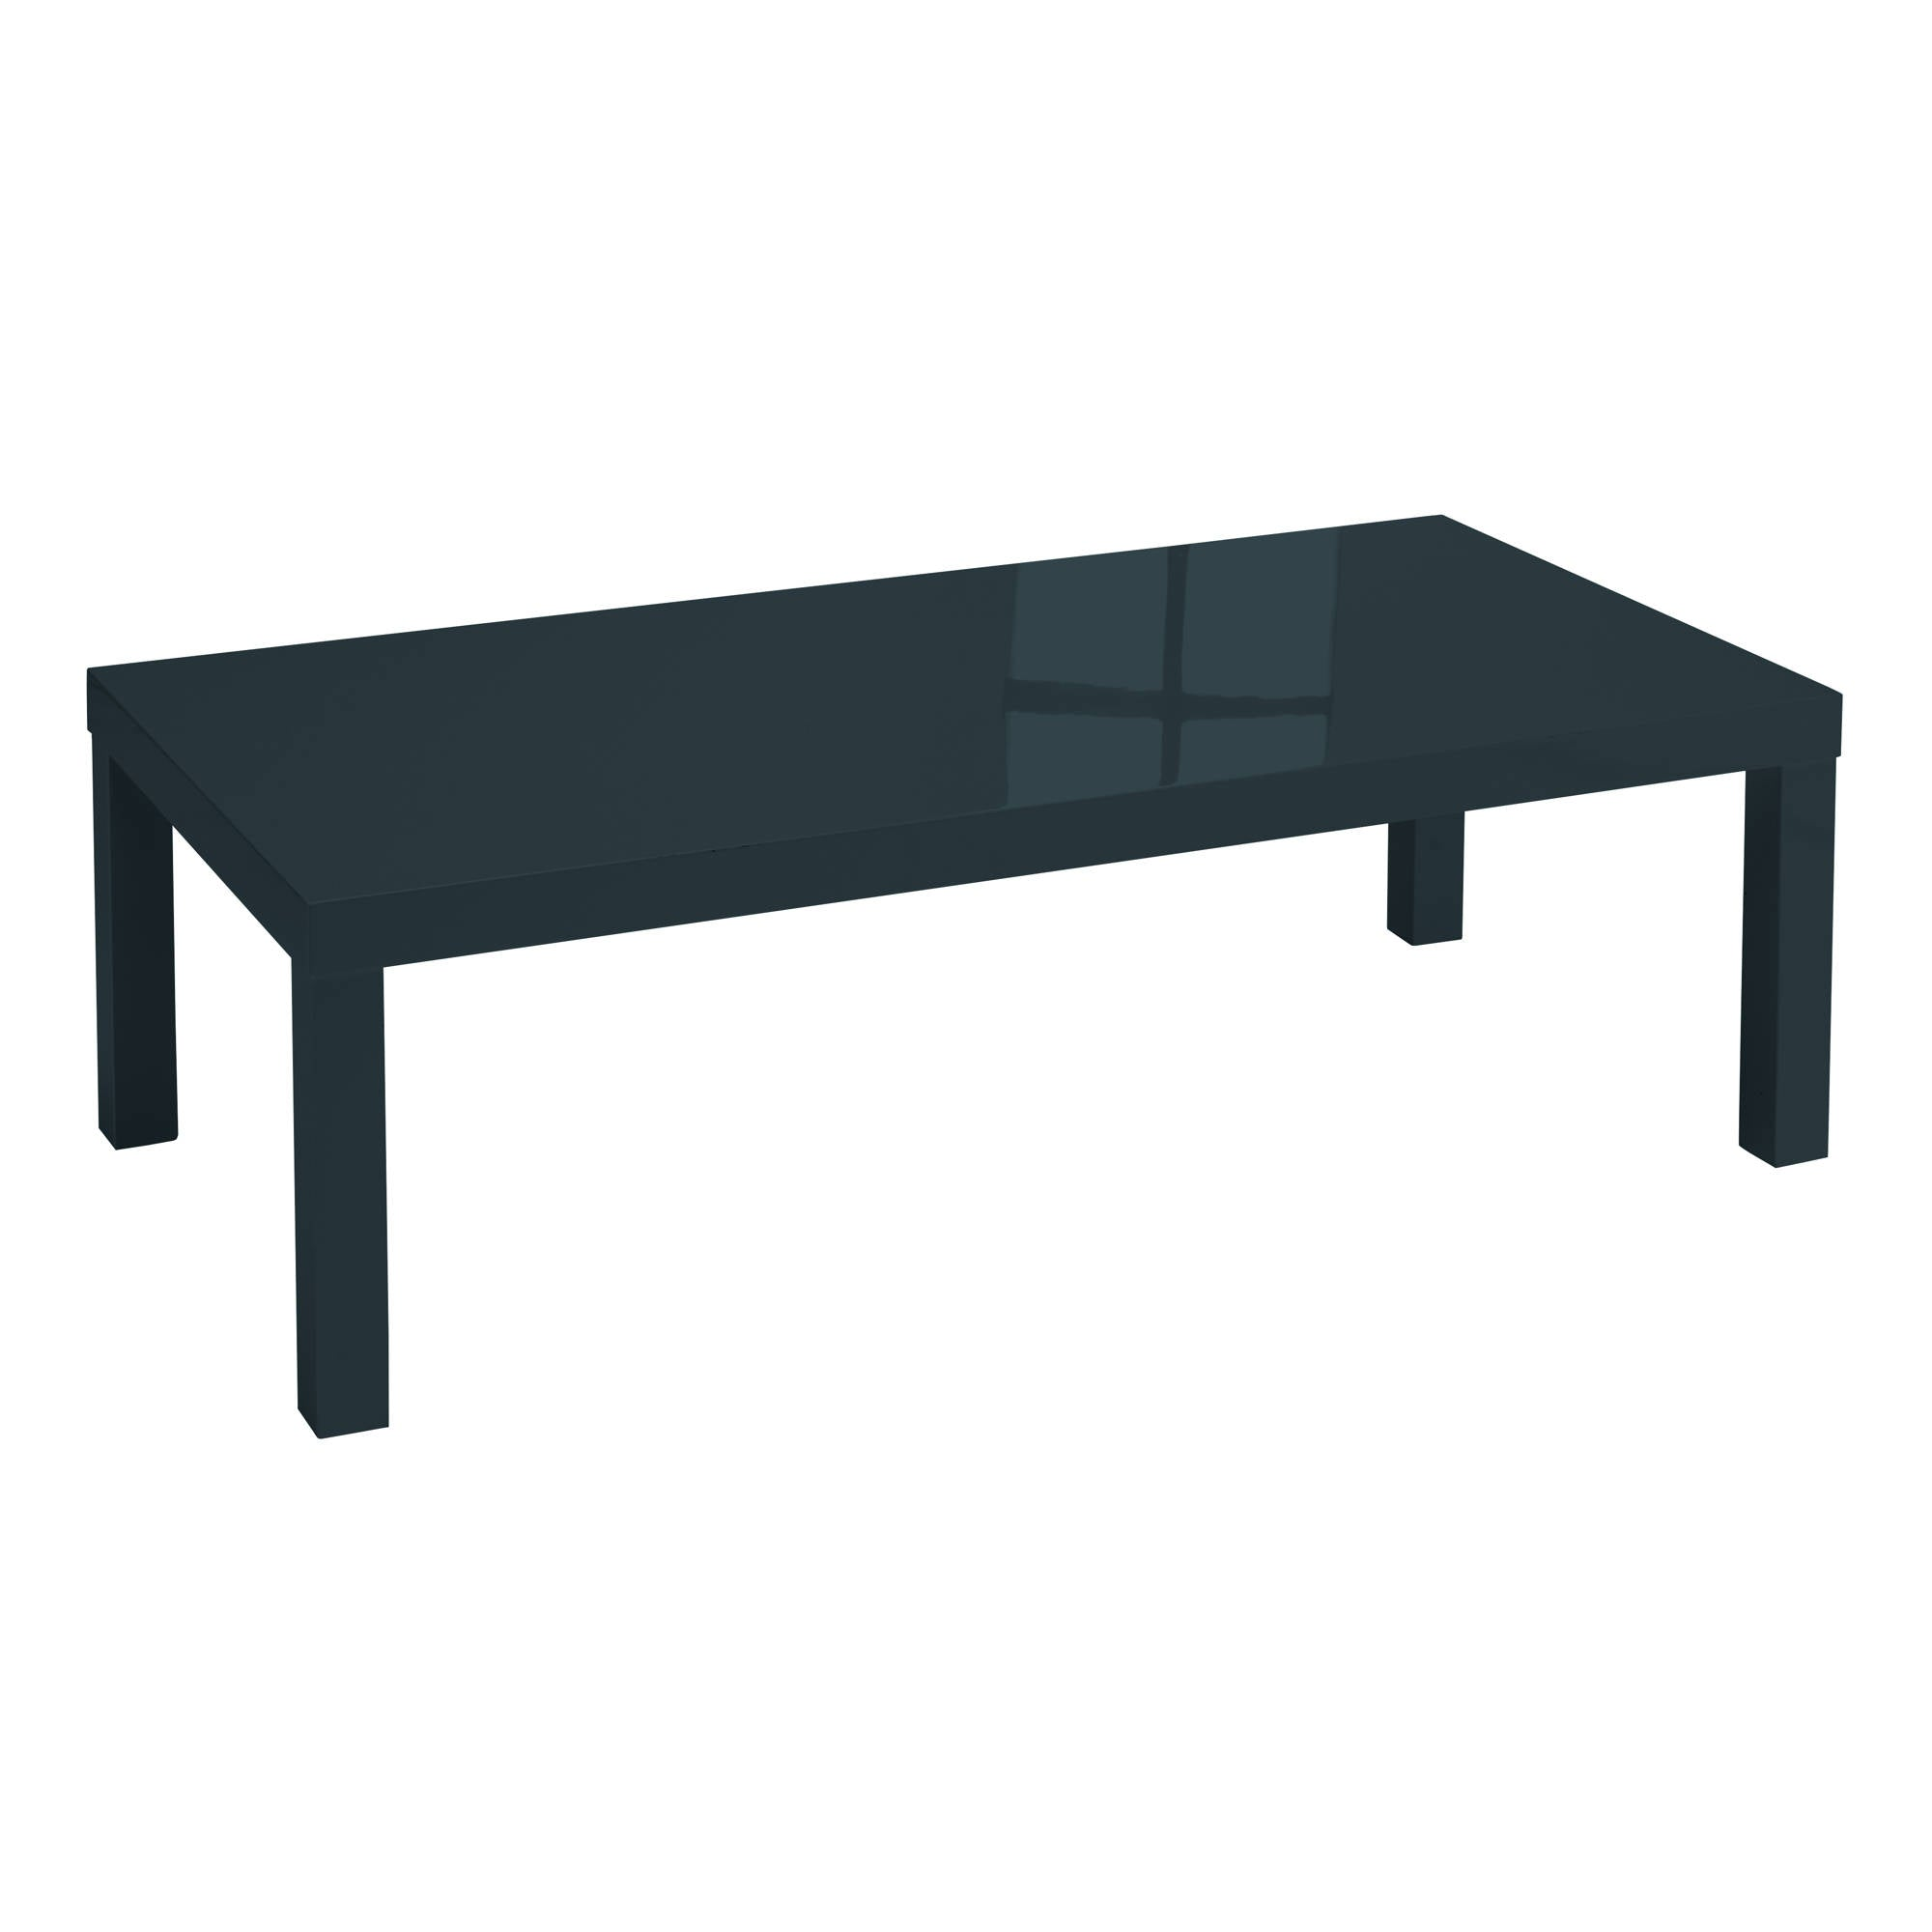 Sterling Coffee Table in Charcoal - Ezzo